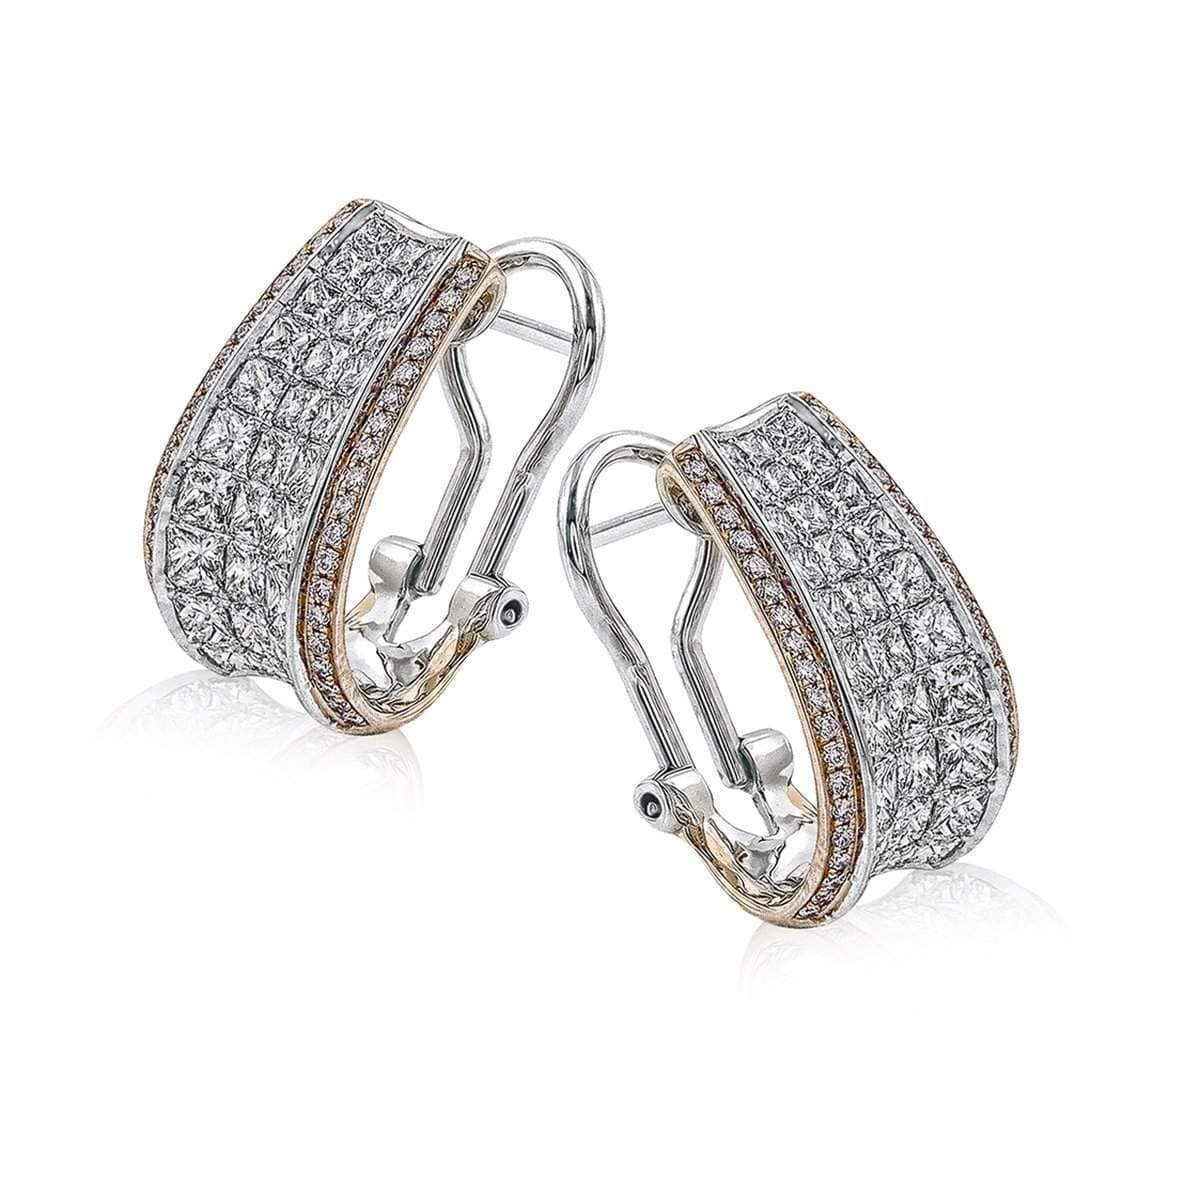 18k Rose & White Gold Simon Set Diamond Earrings - ME1902-RW-Simon G.-Renee Taylor Gallery